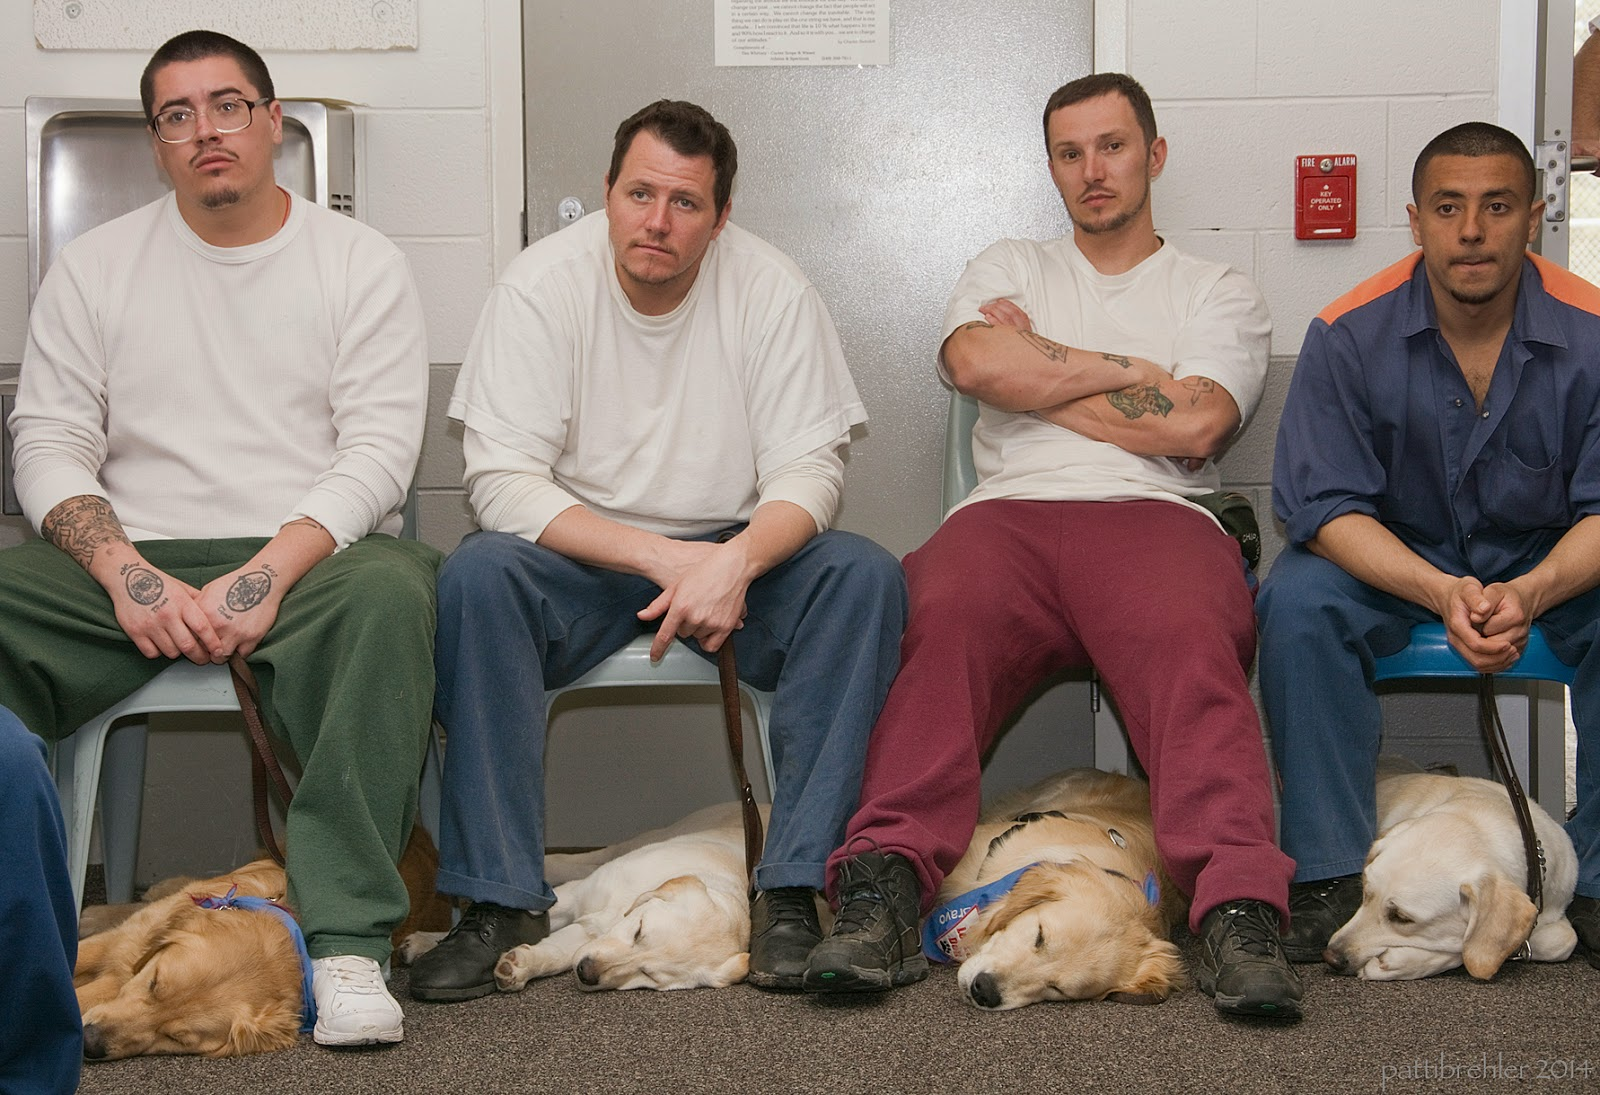 Four men are sitting on light blue plastic chairs in a row facing the camera. The first man, left to right, is wearing green pants and a white shirt and glasses, the second man is wearig blue pants and a white shirt, the third man is wearing maroon pants and a white t-shirt, and the fourt man is wearing the blue prison uniform. All the men have puppies lying down beneath them on the floor and under their chairs. The dogs are, left to right, a golden retriever, a yellow lab, a golden retriever and a yellow lab. The dogs are all lying on their left sides with their heads facing left and are asleep. The men all have sad faces.